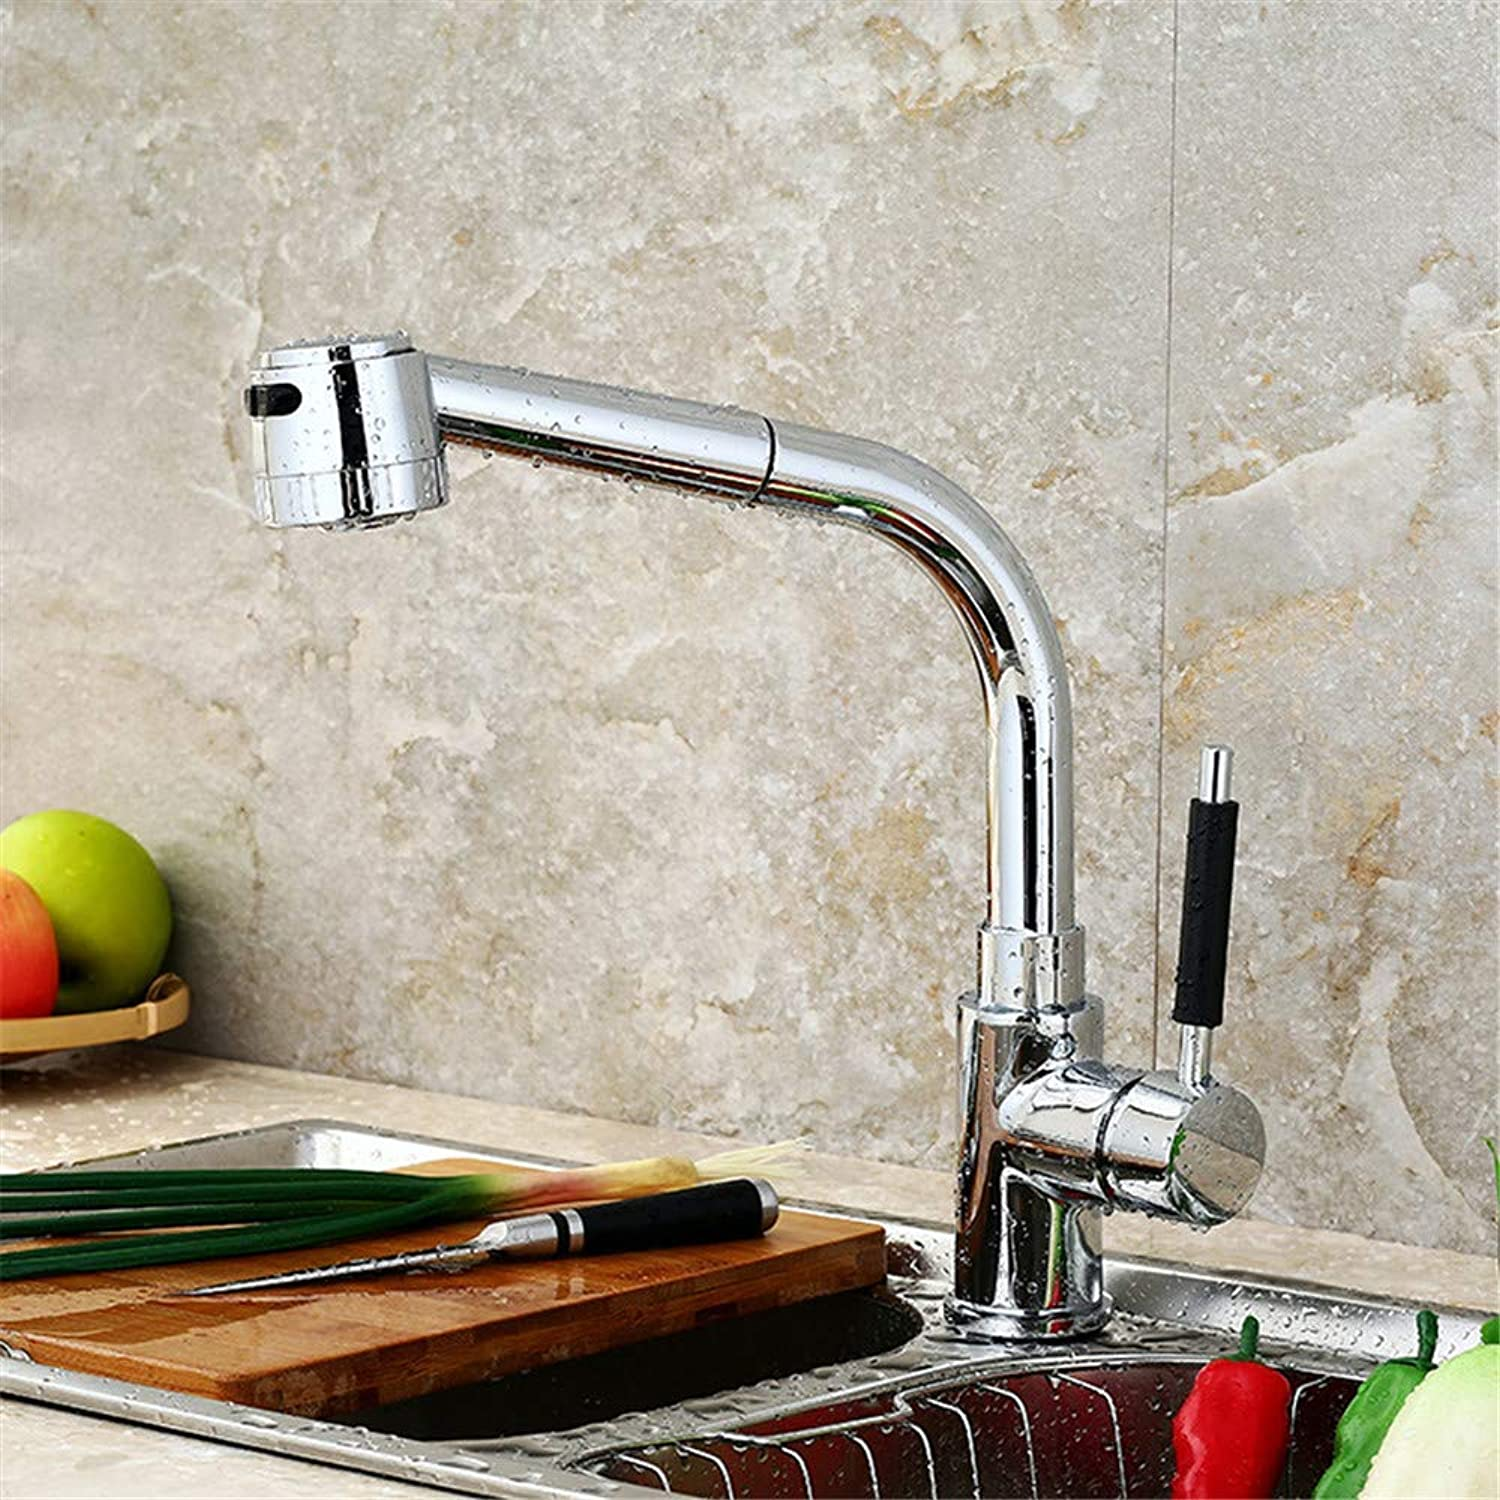 Kitchen Faucet Hot and Cold Water Mixer Kitchen Sink Faucet Full Copper Body Rotatable Single Handle Chrome-Plated Polished Lead-Free